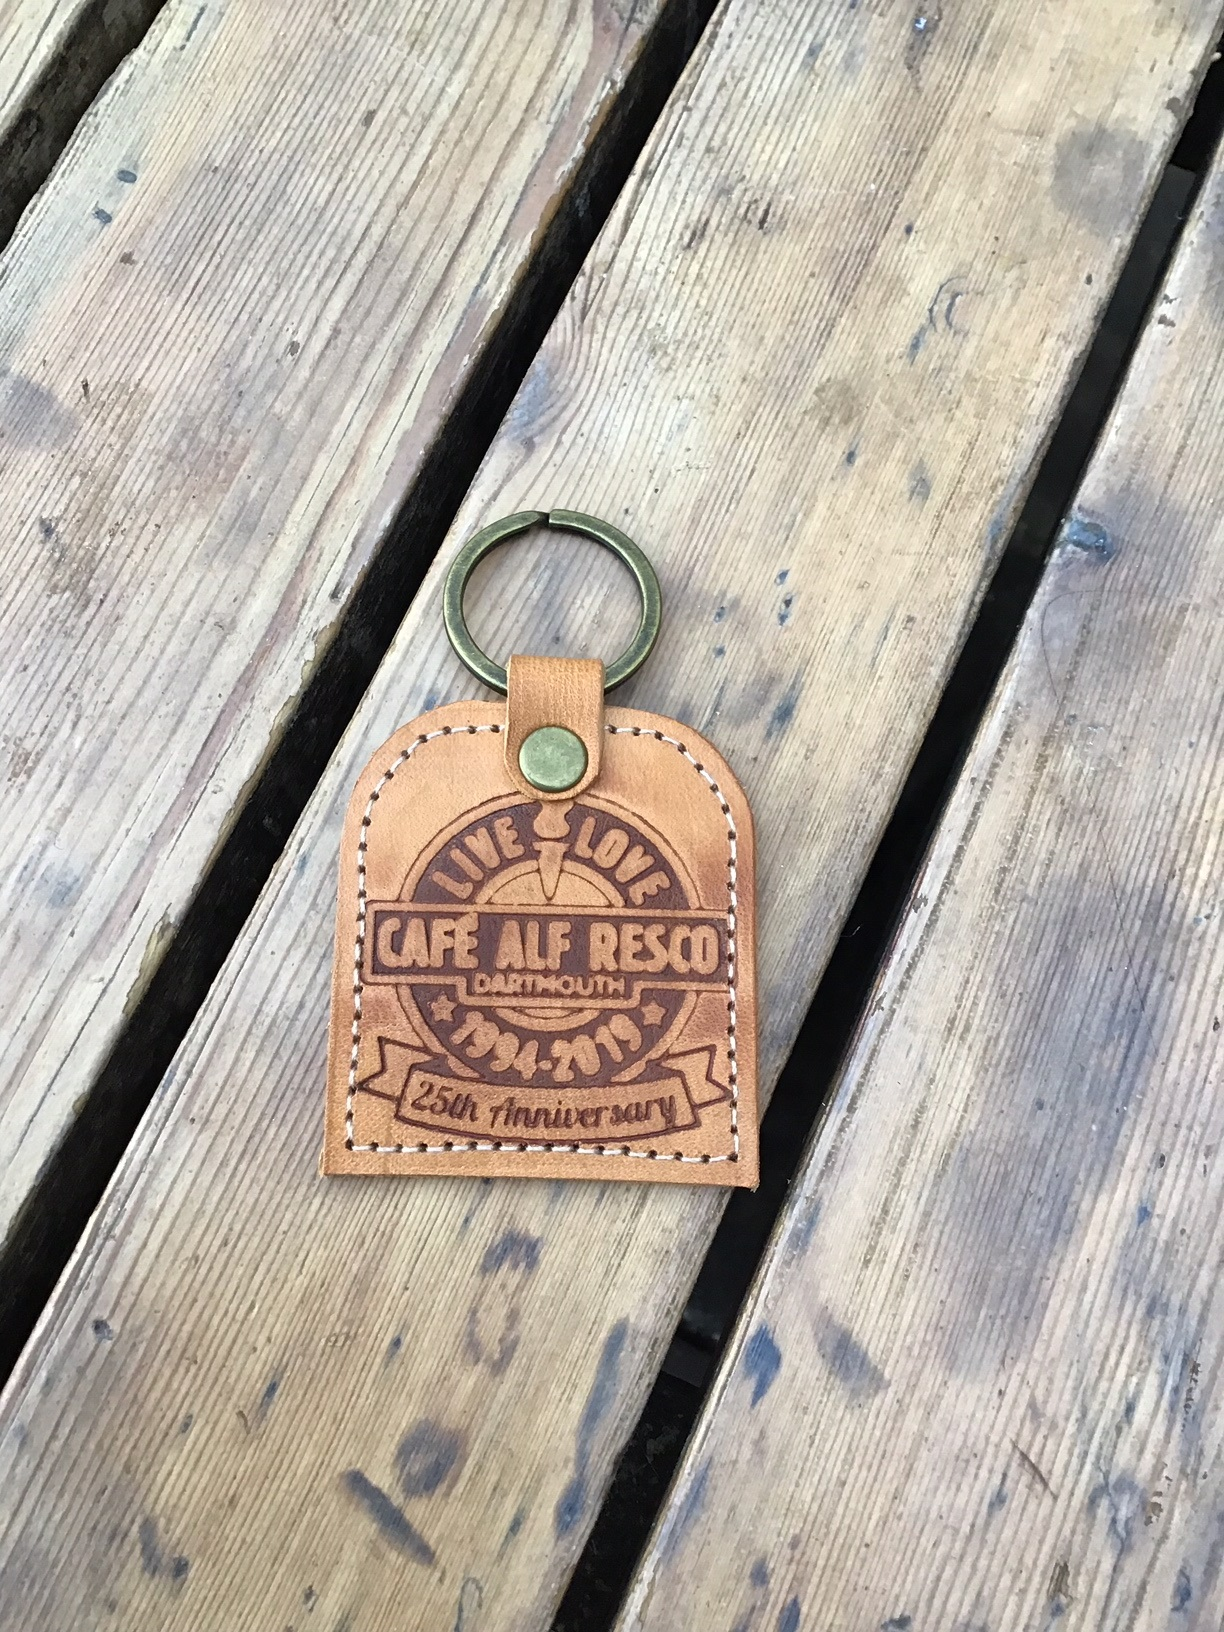 Cafe Alf Resco Limited Edition 25th Anniversary Handmade Leather Keyring